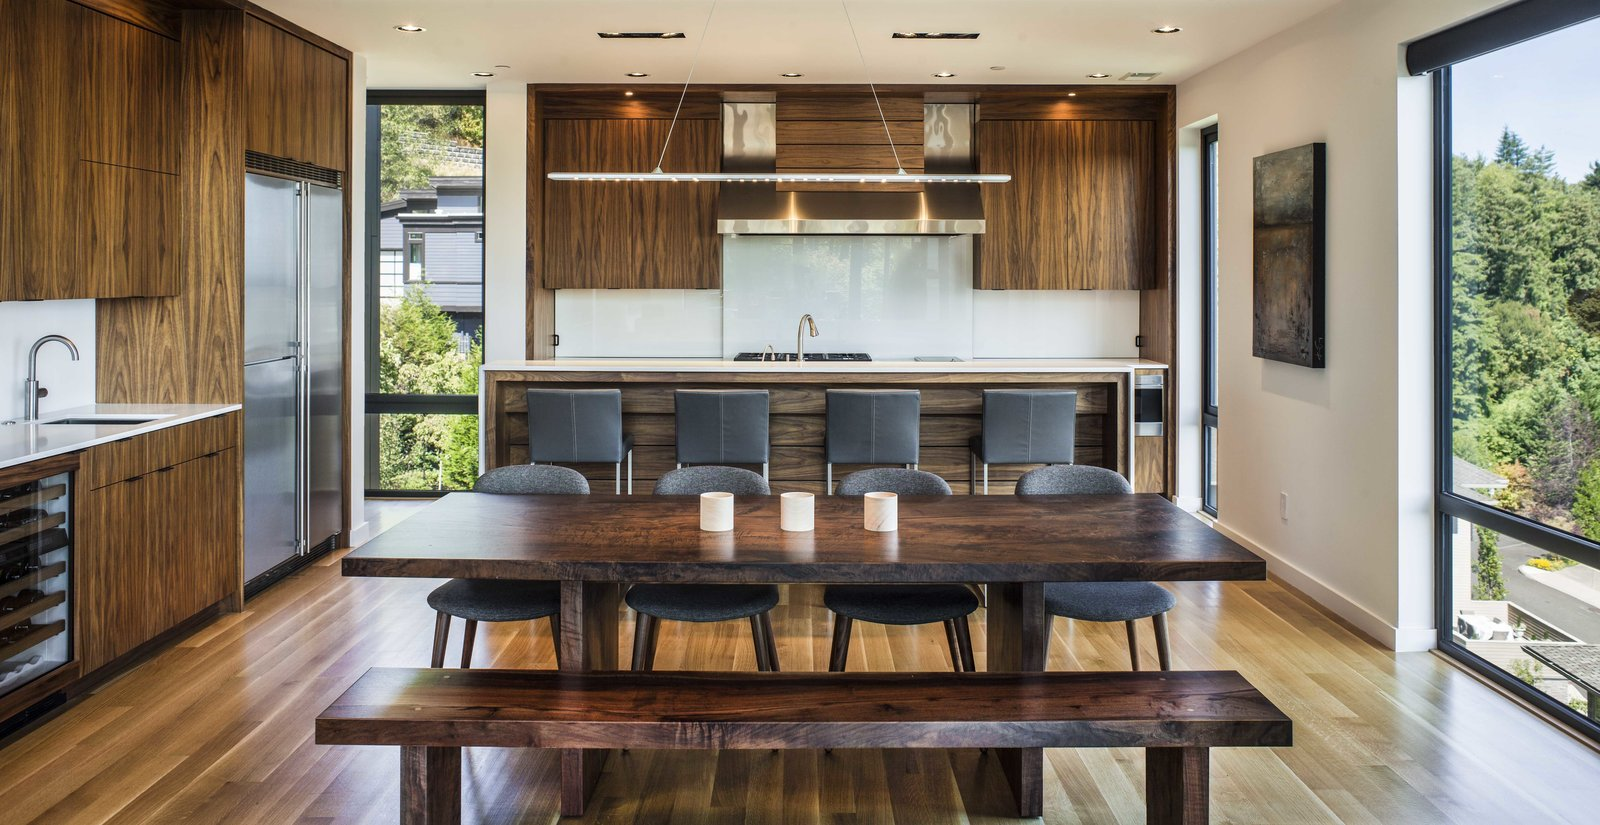 Kitchen Tagged: Kitchen, Wood Cabinet, Refrigerator, Medium Hardwood Floor, Ceiling Lighting, Pendant Lighting, Undermount Sink, and Range.  Music Box Residence by Scott | Edwards Architecture